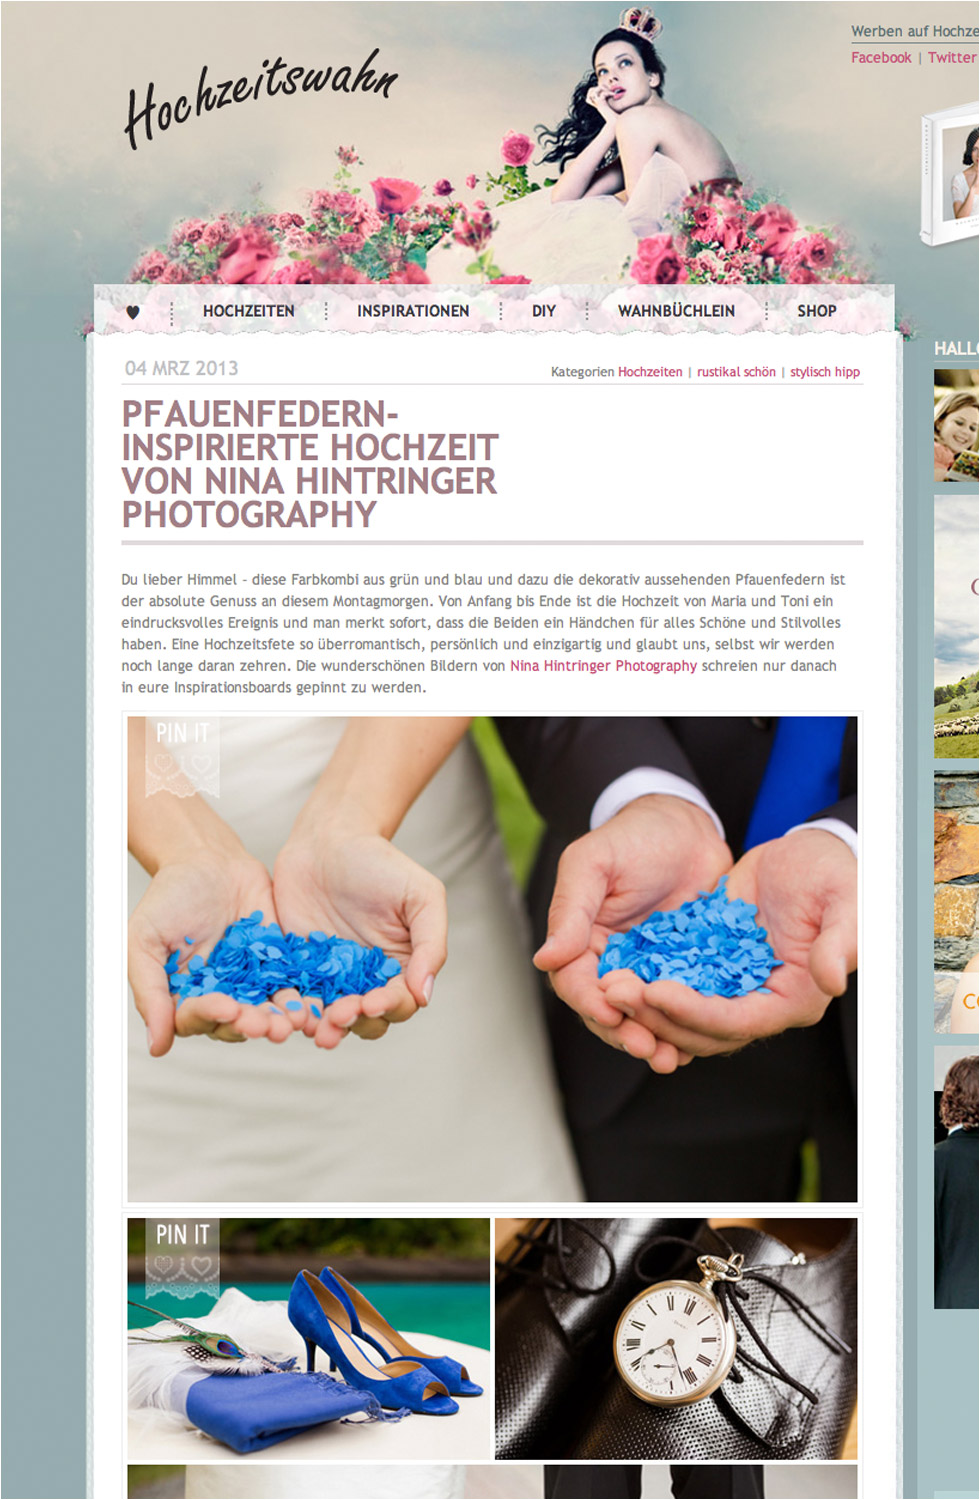 Published on Hochzeitswahn - Blog of Nina Hintringer Photography - Wedding Photography, Wedding Reportage and Destination Weddings